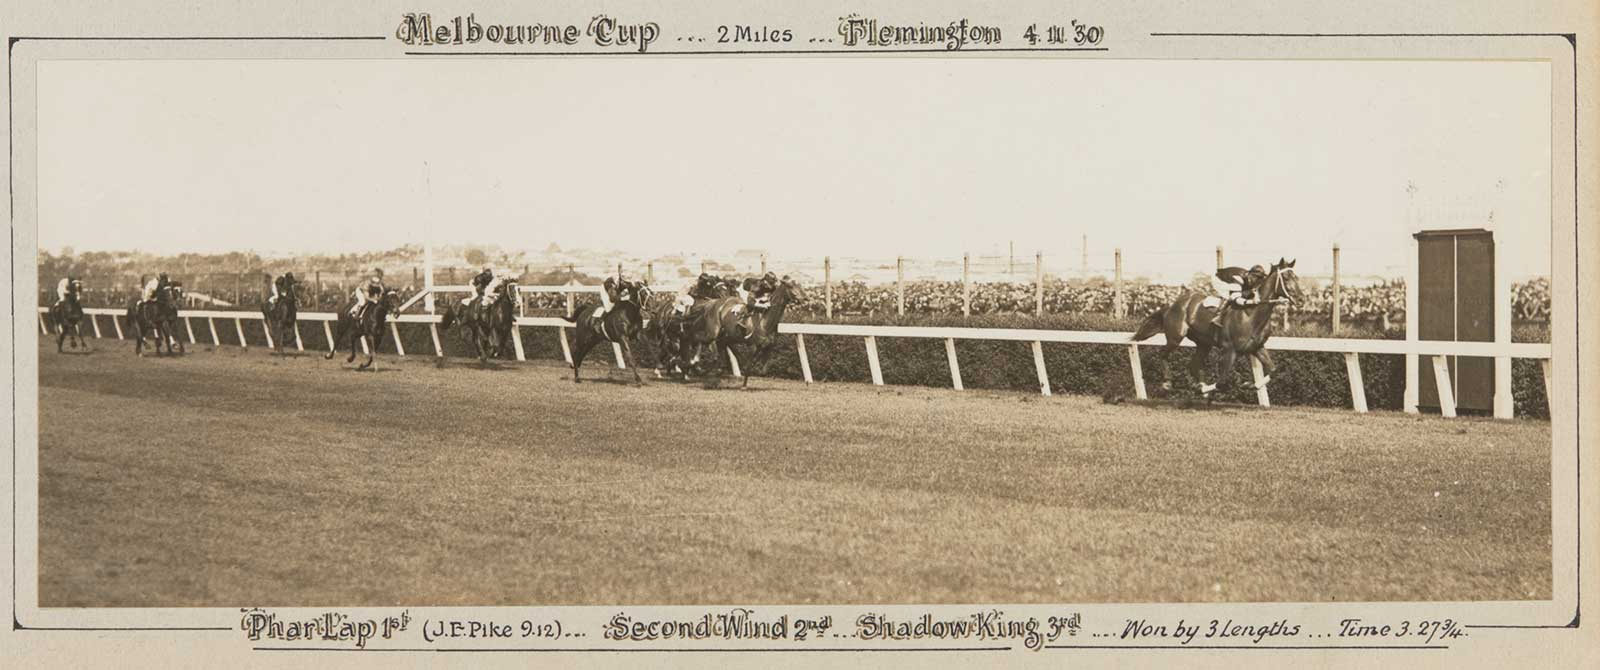 A black and white photo of Phar Lap winning the Melbourne Cup, 1930. - click to view larger image